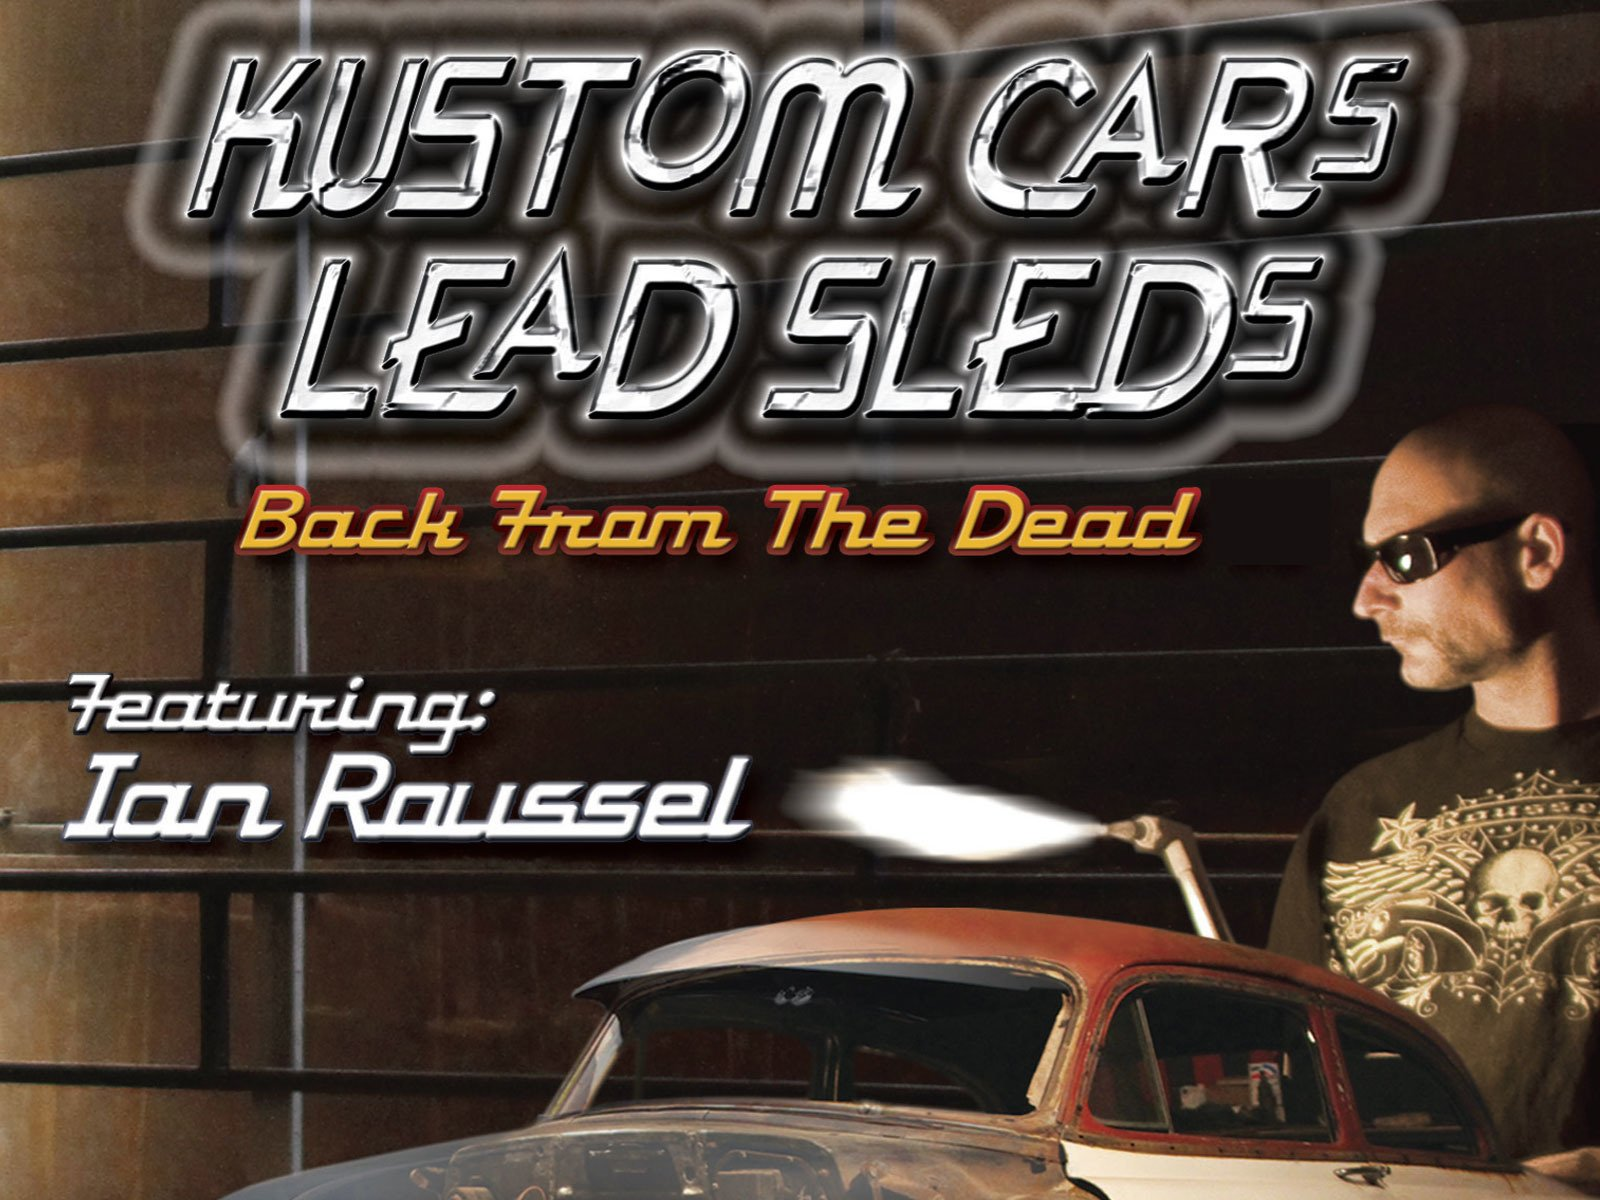 Kustom Cars, Lead Sleds: Back from Dead with Ian Roussel on Amazon Prime Video UK